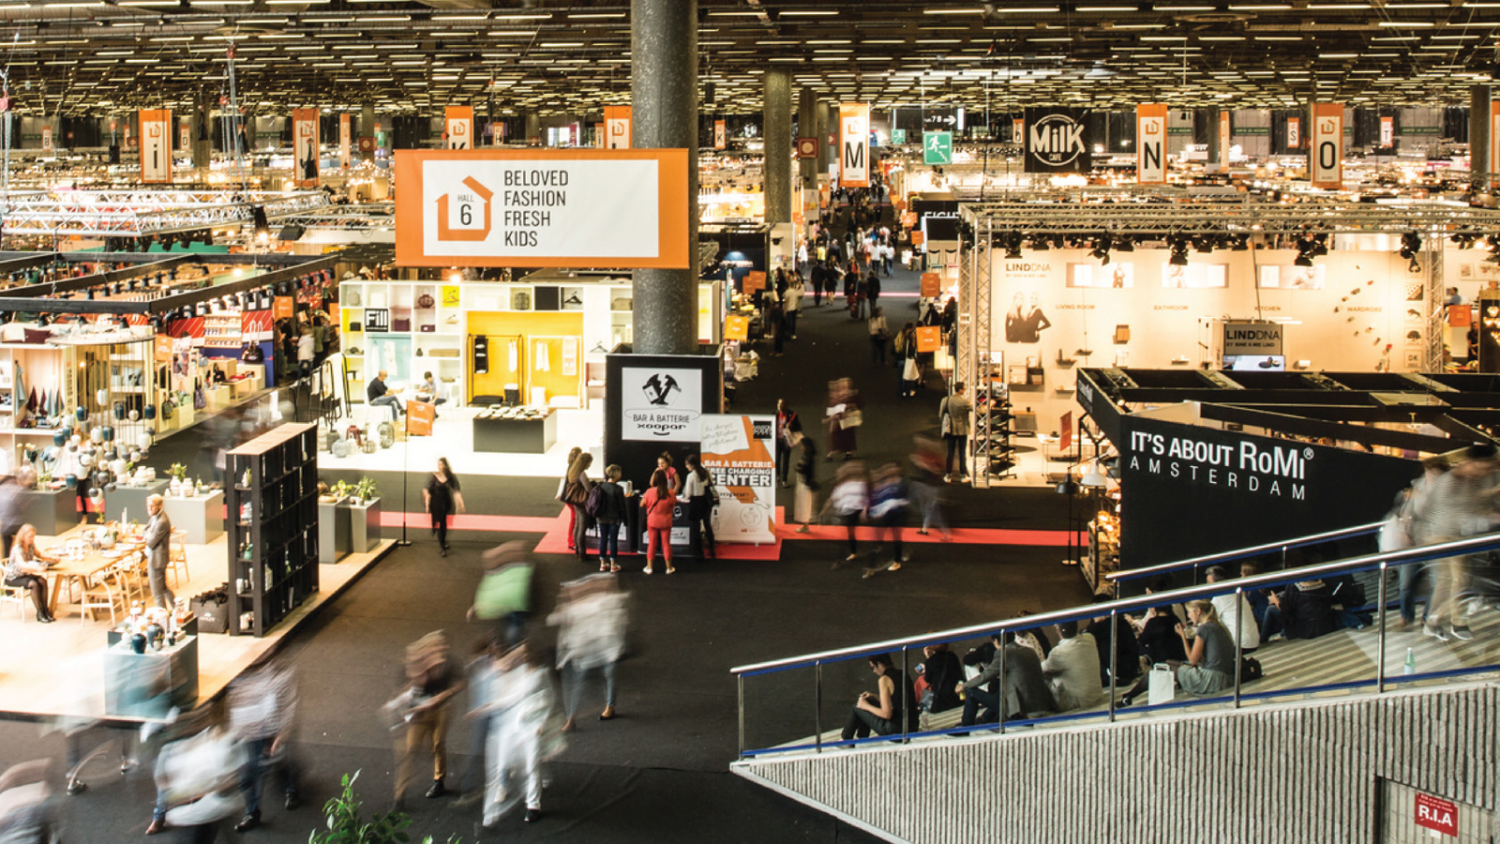 maison et objet Discover Here The Itinerary Of Maison Et Objet 2020 maison objet 2020 event guide